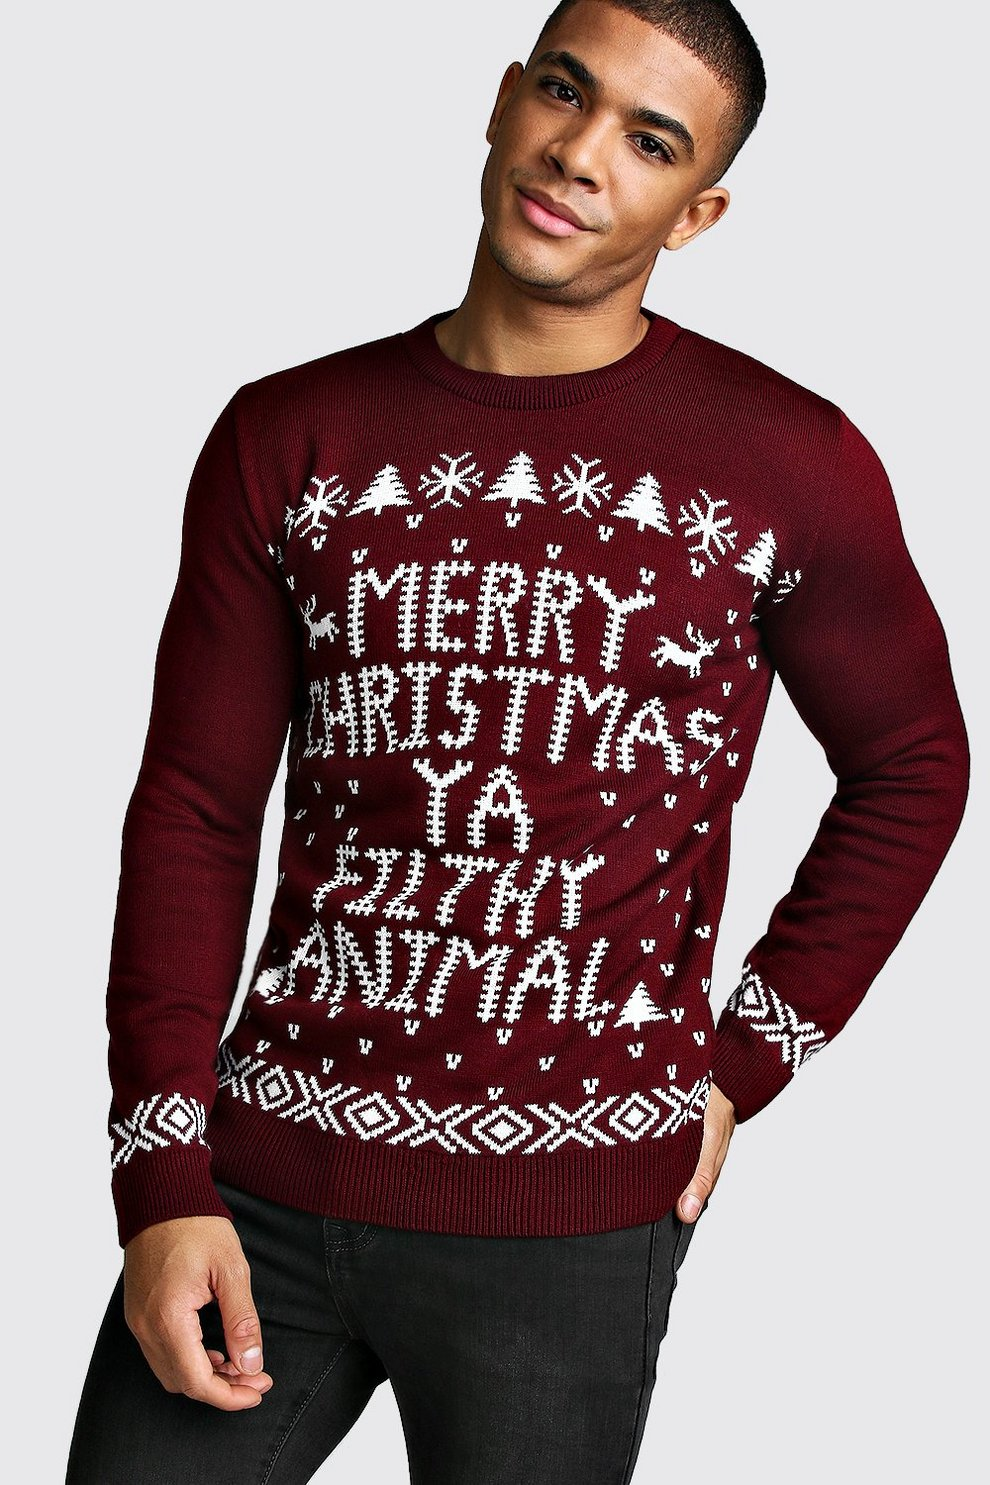 merry christmas ya filthy animal jumper - Merry Christmas Ya Filthy Animals